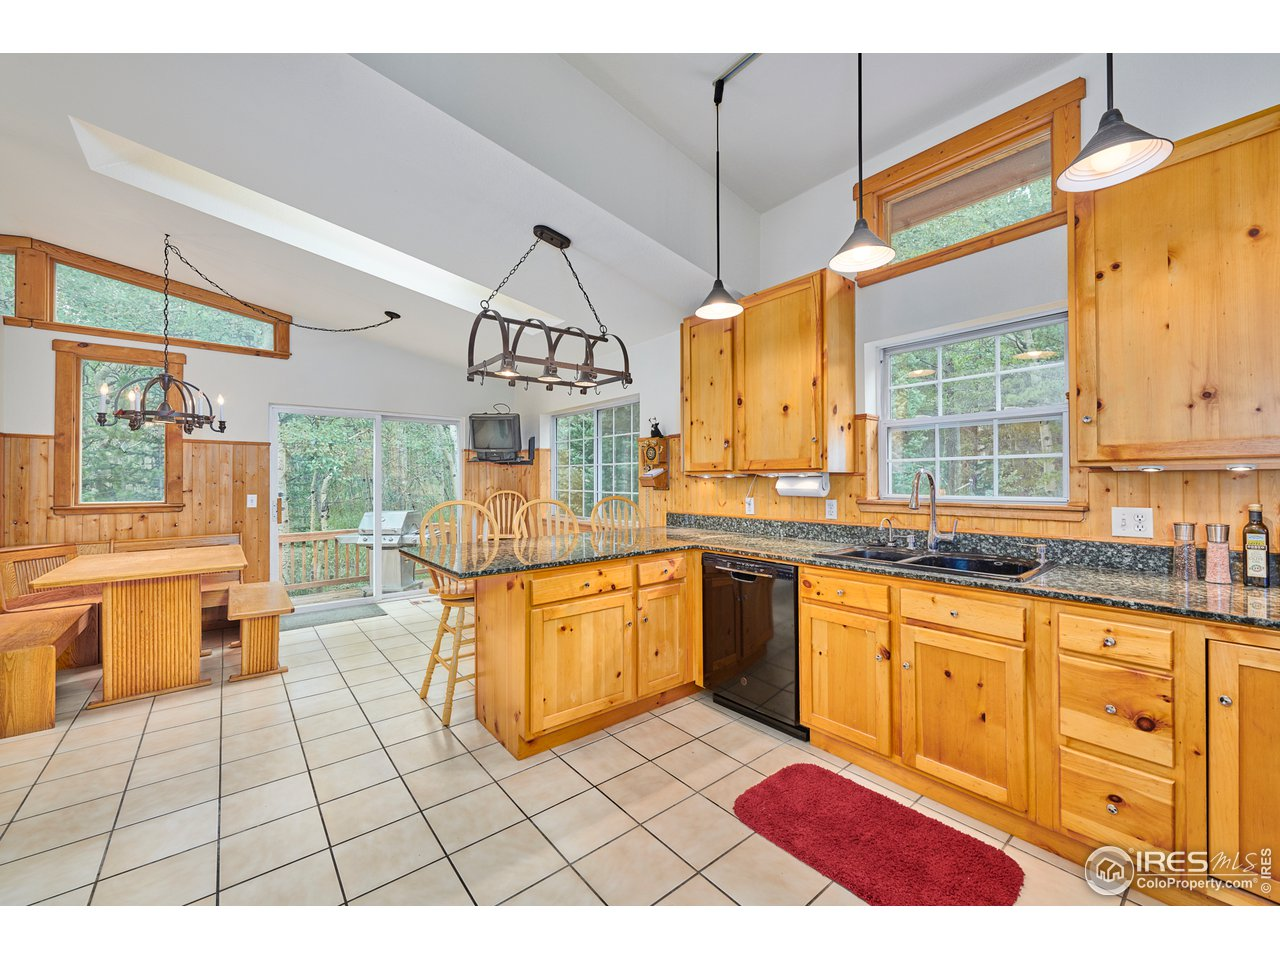 Large kitchen with dining space